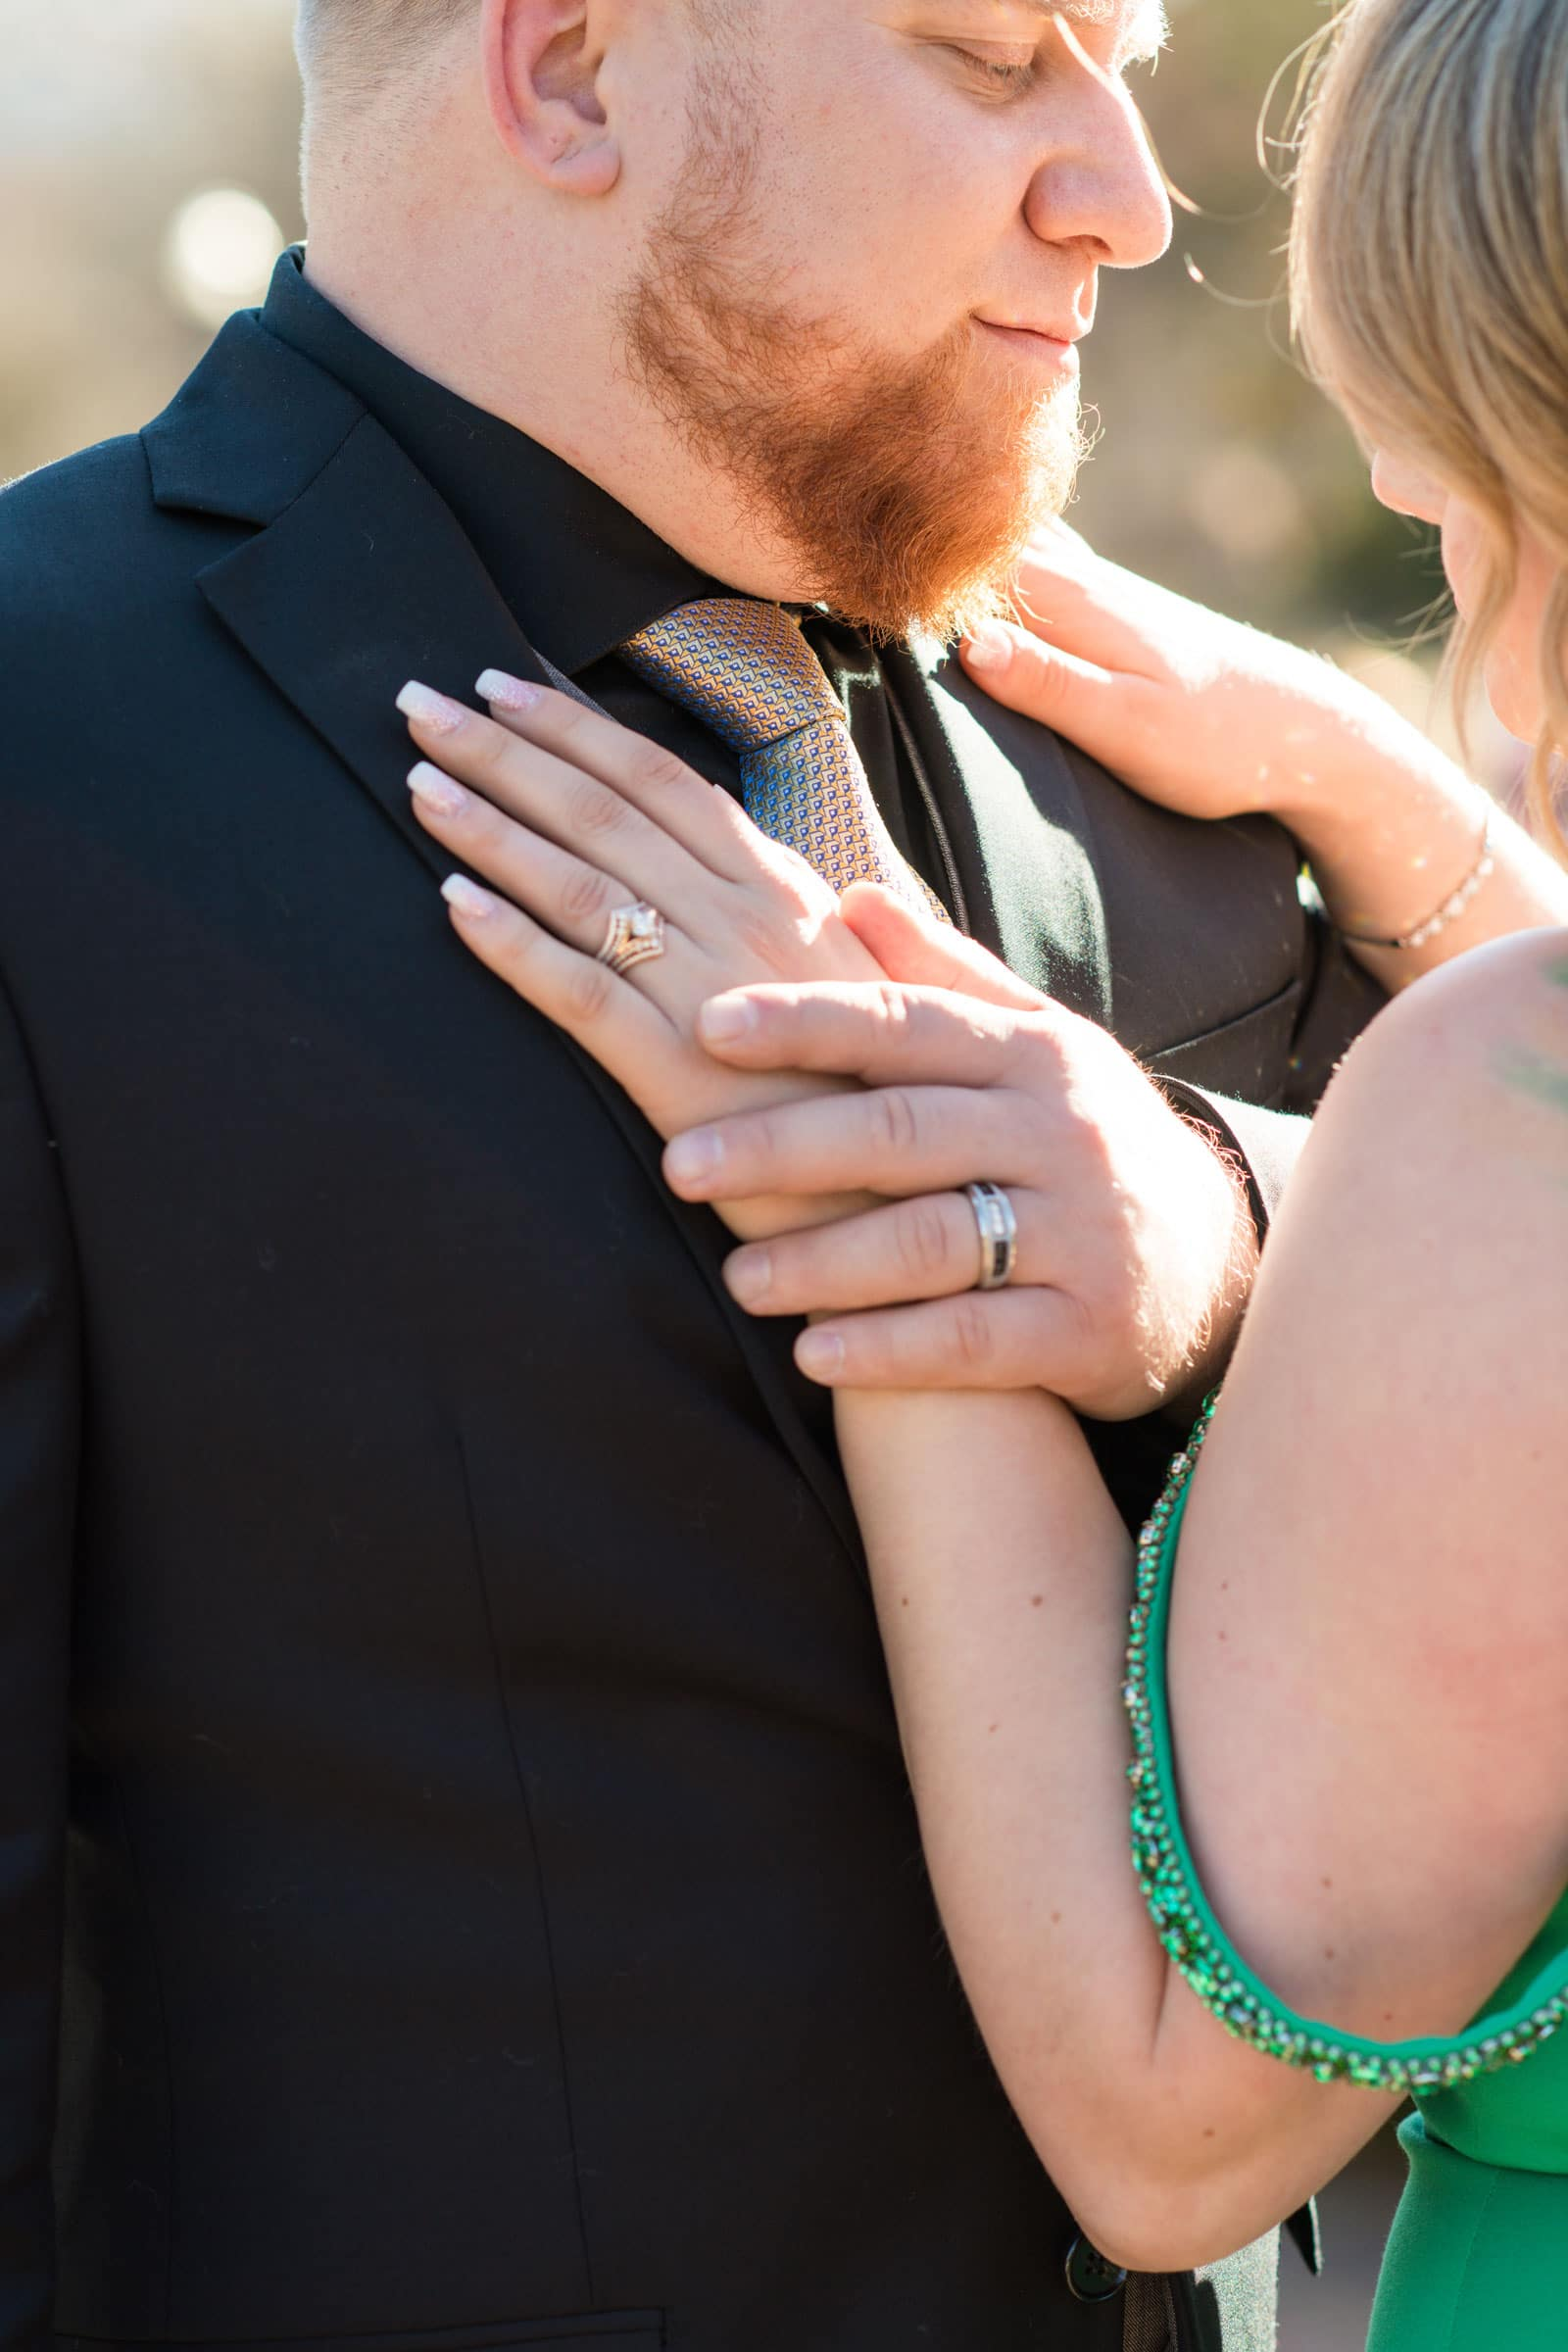 husband holds wife's hand on chest